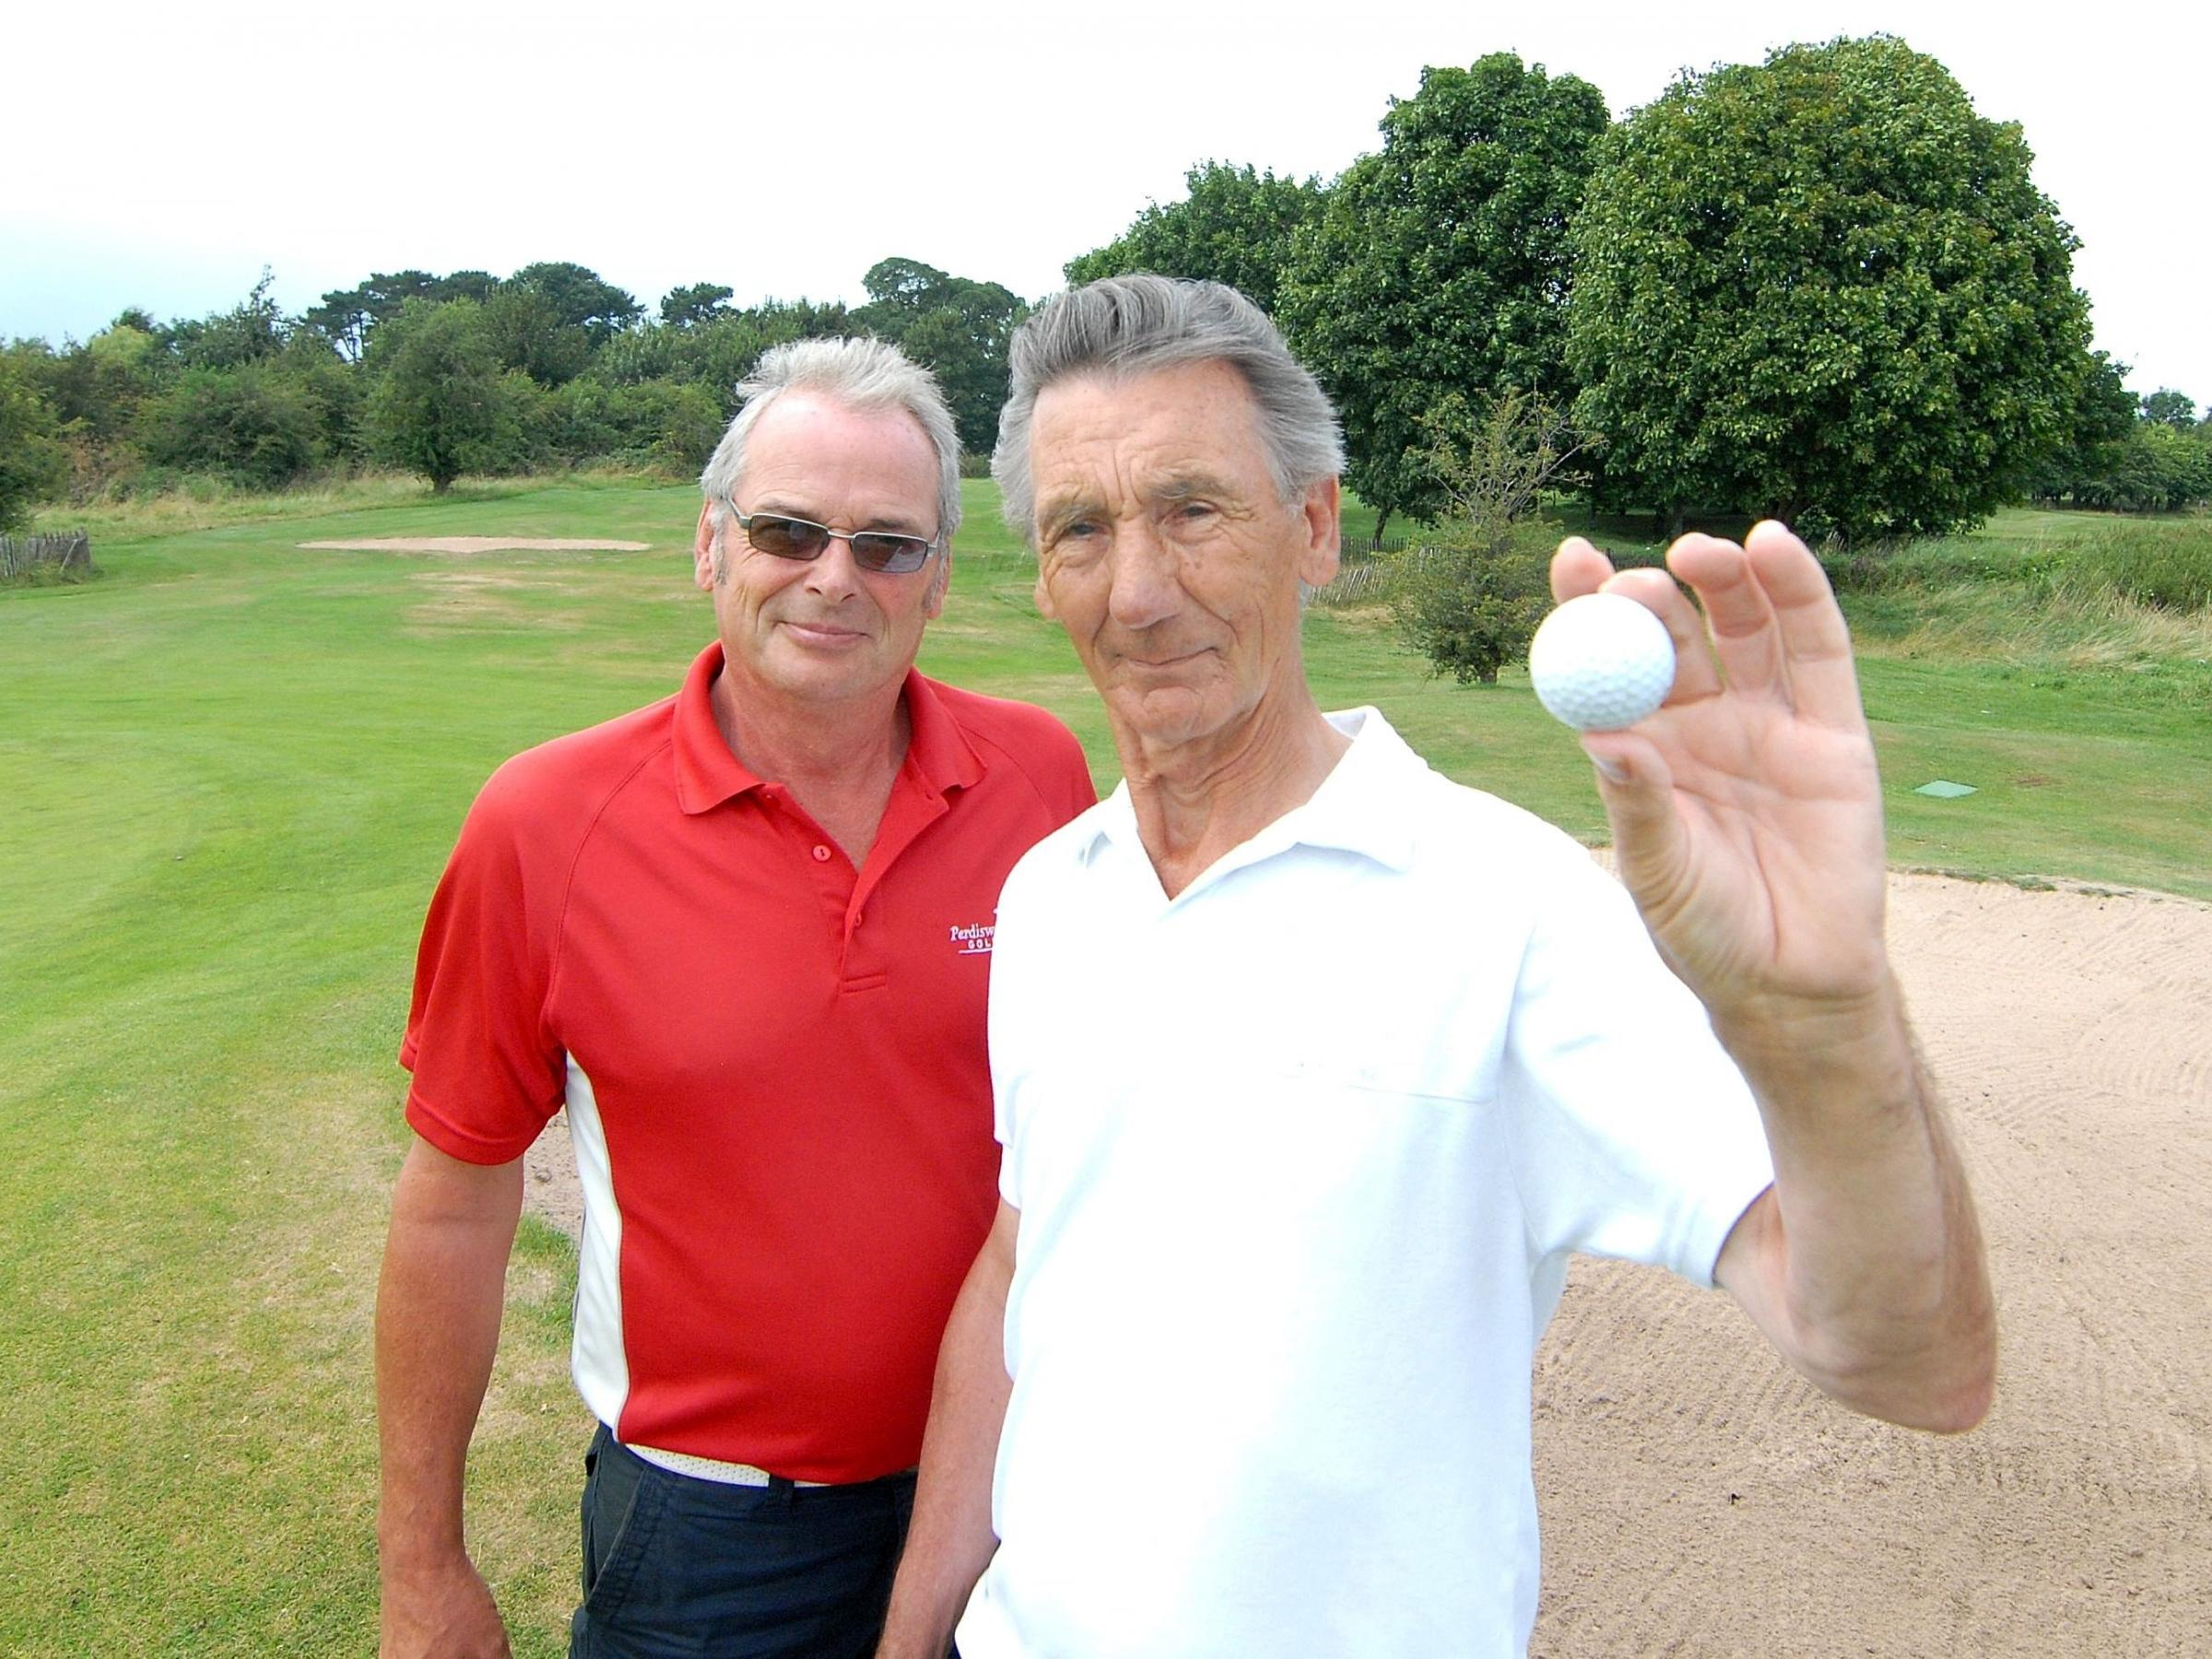 Golfer's injury highlights dangers at Perdiswell course